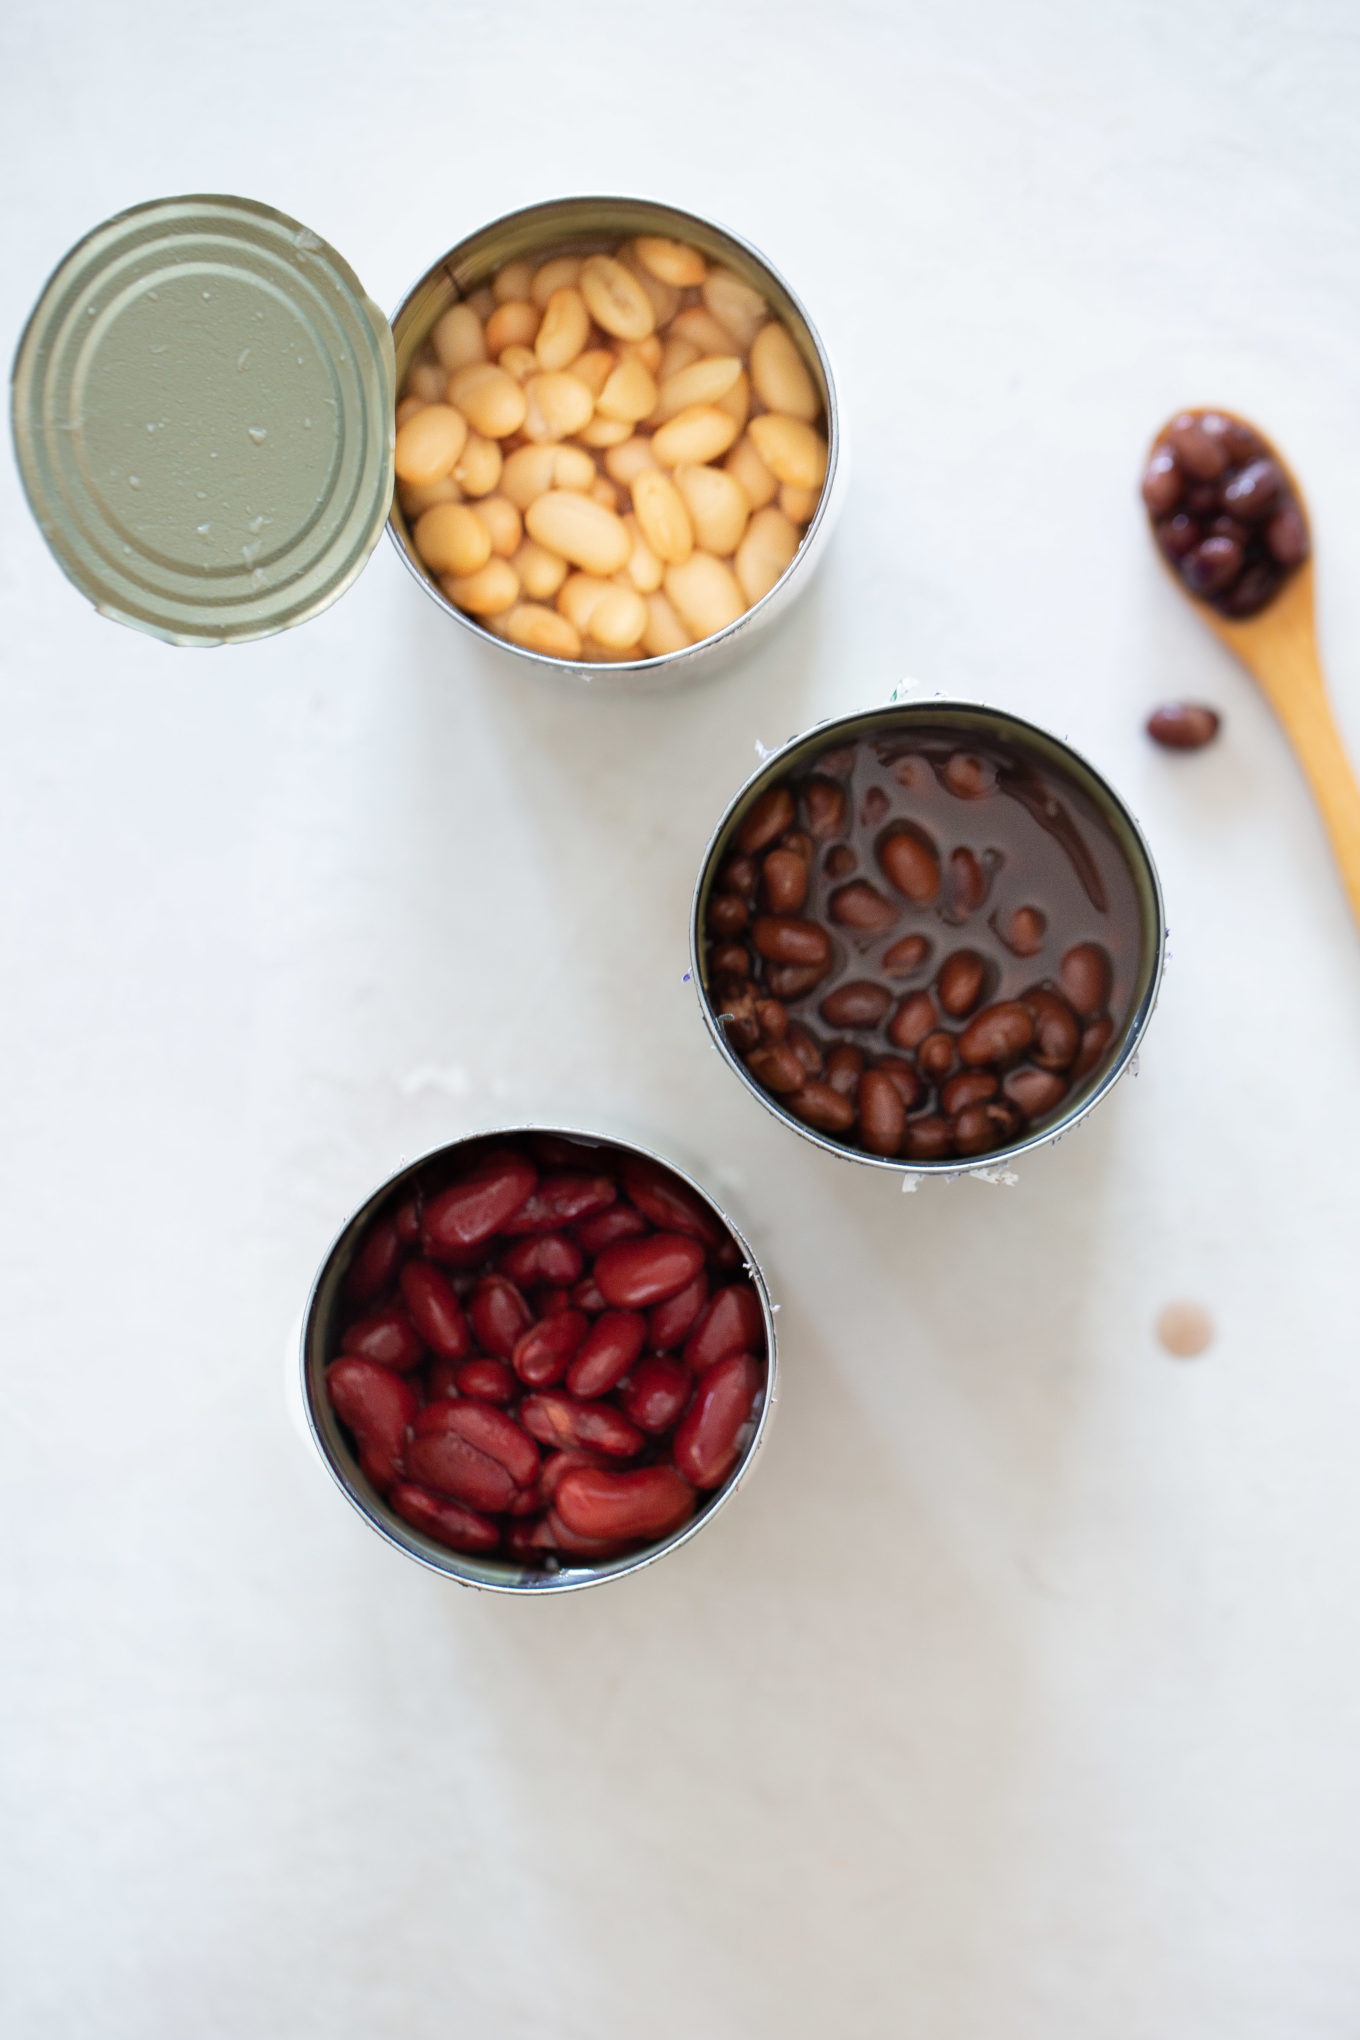 three cans of different beans